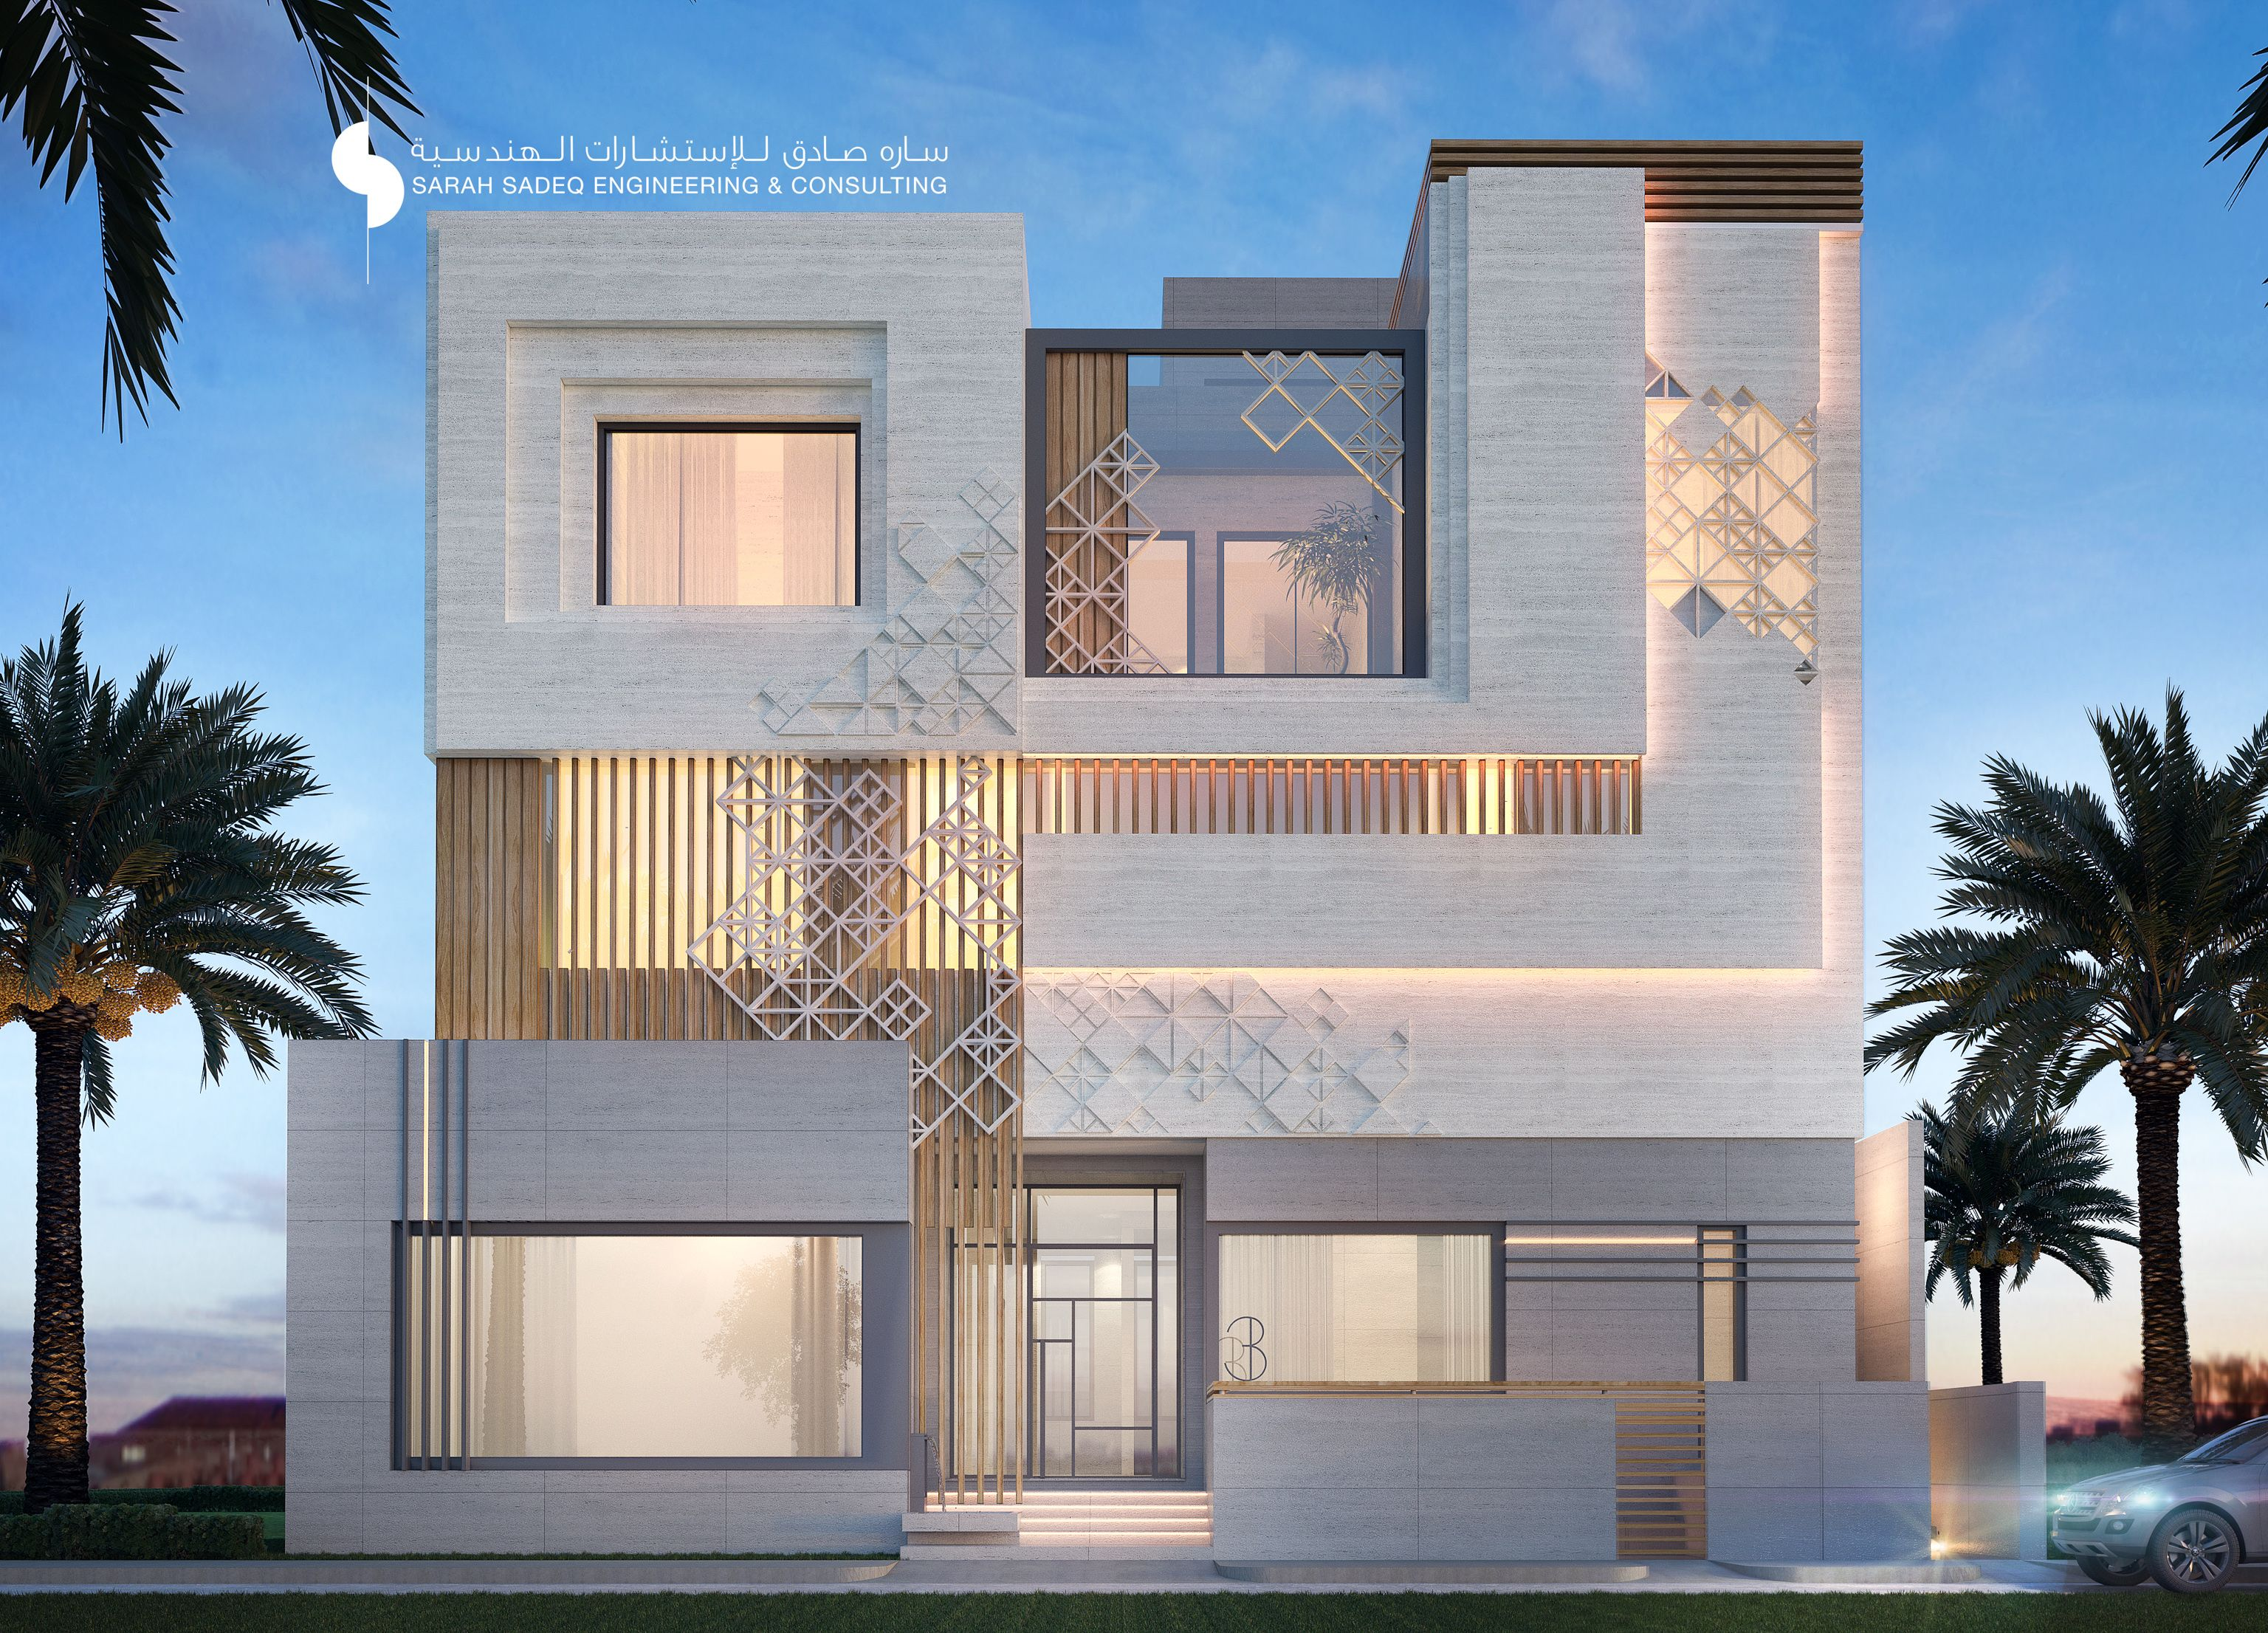 Private villa kuwait 400 m by sarah sadeq architects for New architecture design house